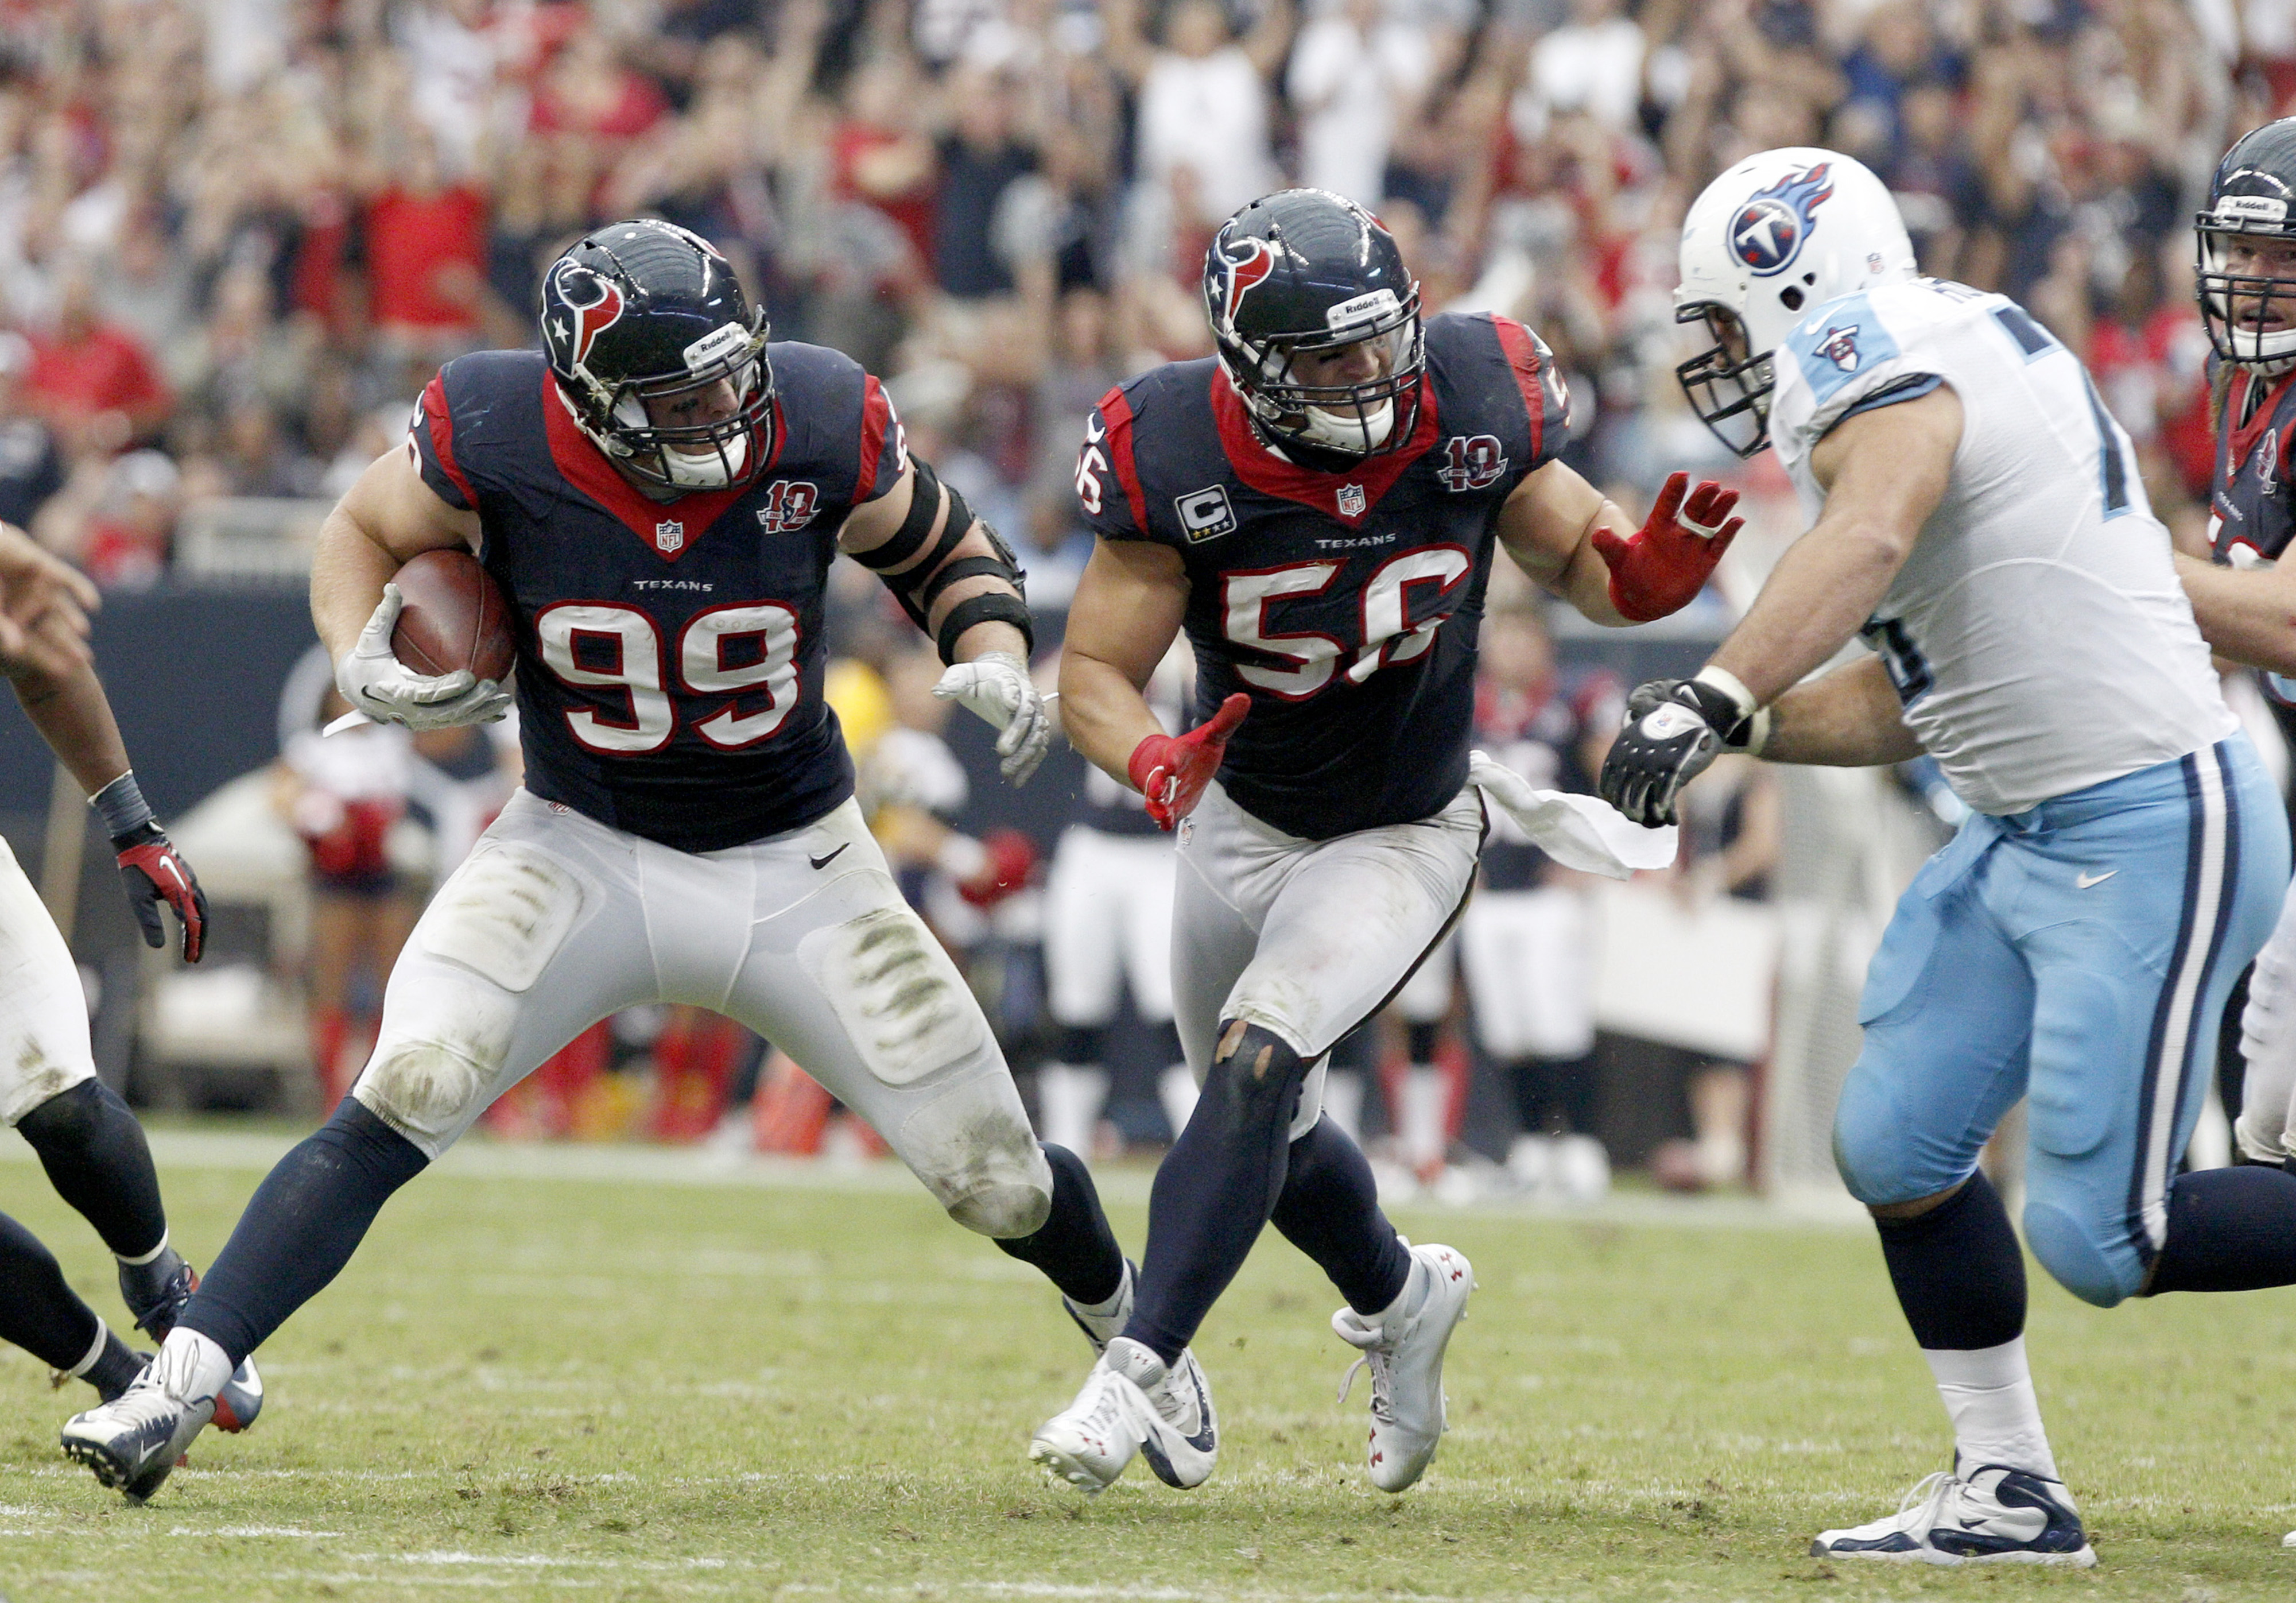 J.J. Watt with the football, and Brian Cushing as lead blocker.  Game over.